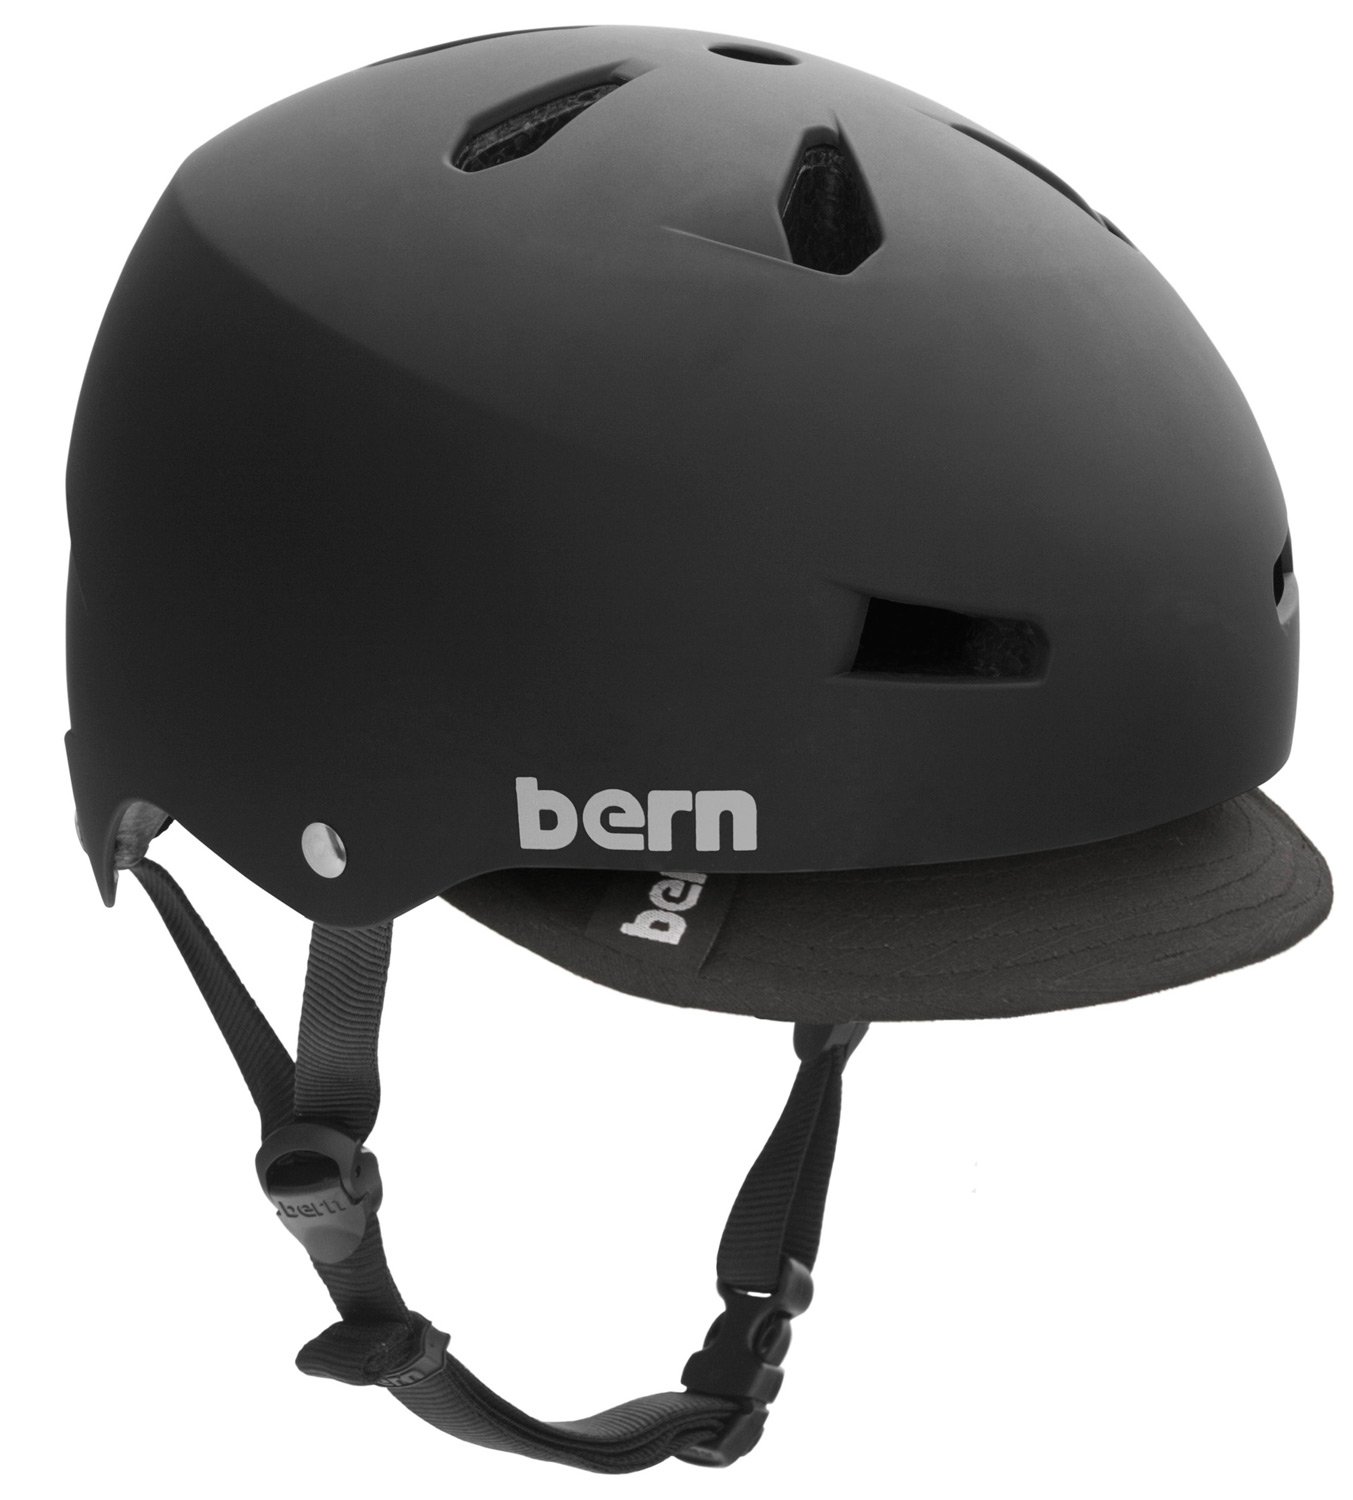 Ski The Macon bike helmet takes skate style to your everyday commute. Core clean lines and durable construction team up with a removable visor for protection against the sun and inclement weather. Bern's All Season liner system allows you to use the Macon on your snowboard, skis or bike.Key Features of the Bern Macon w/ Visor Bike Helmet: Available as a helmet with ABS shell and EPS hard foam. EPS hard foam meets ASTM F 2040 and EN 1077B standards for snow and ski, CPSC and EN 1078 standards for bike and skate. 19.1 oz - $35.95